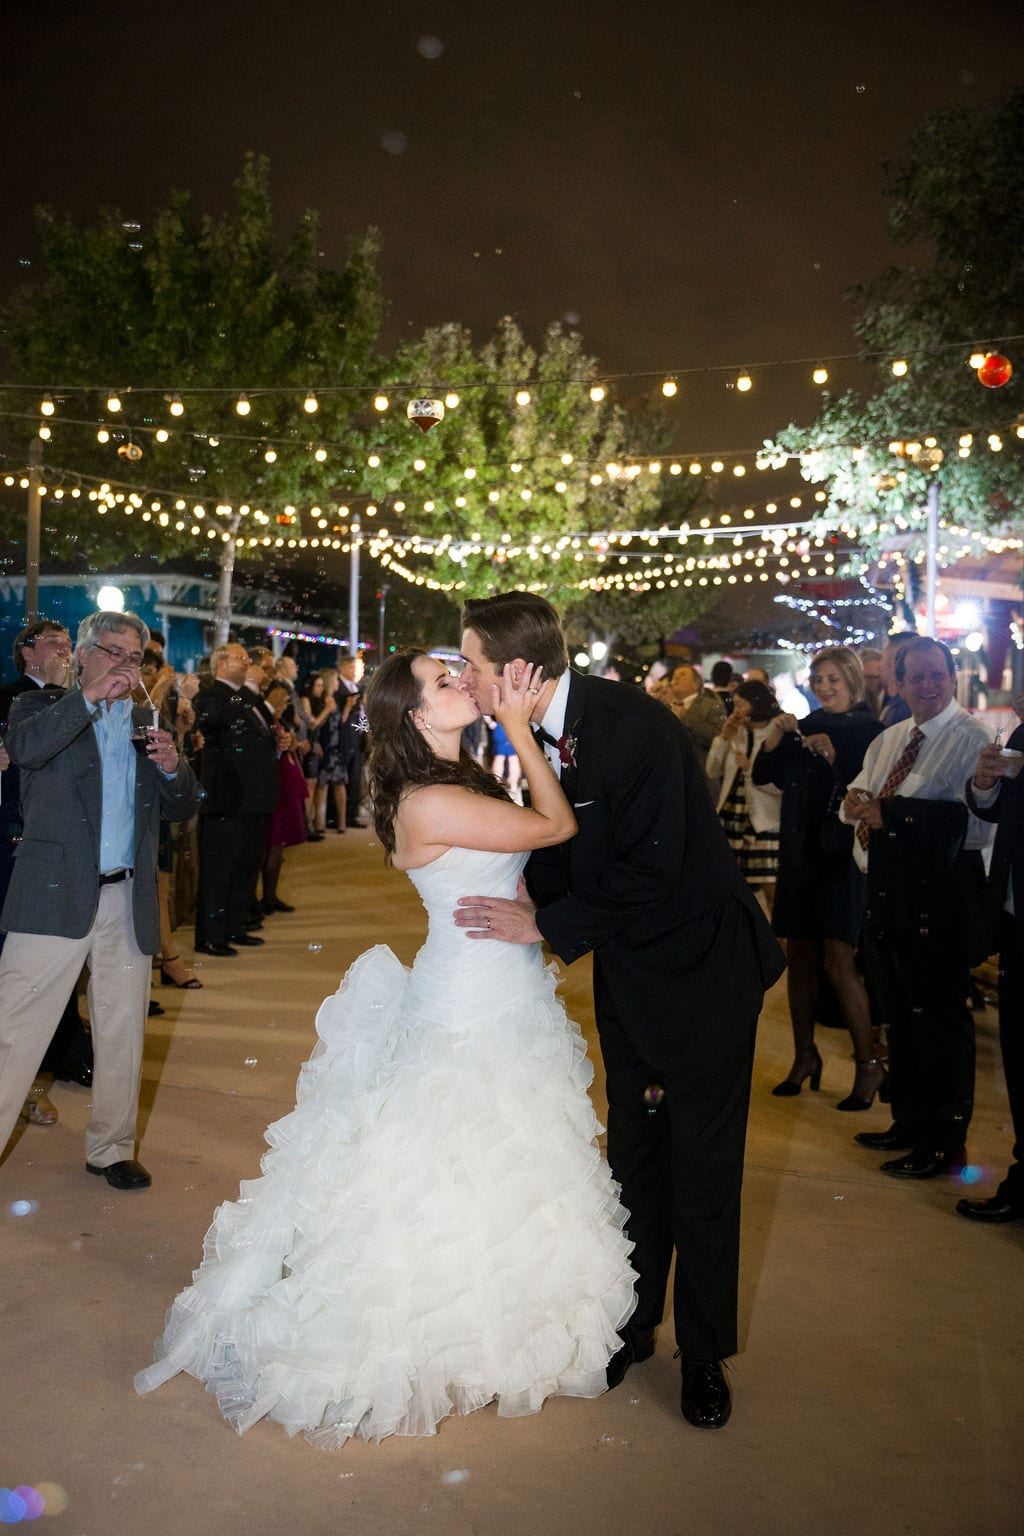 Ashley - Josh's wedding carousel exit kiss